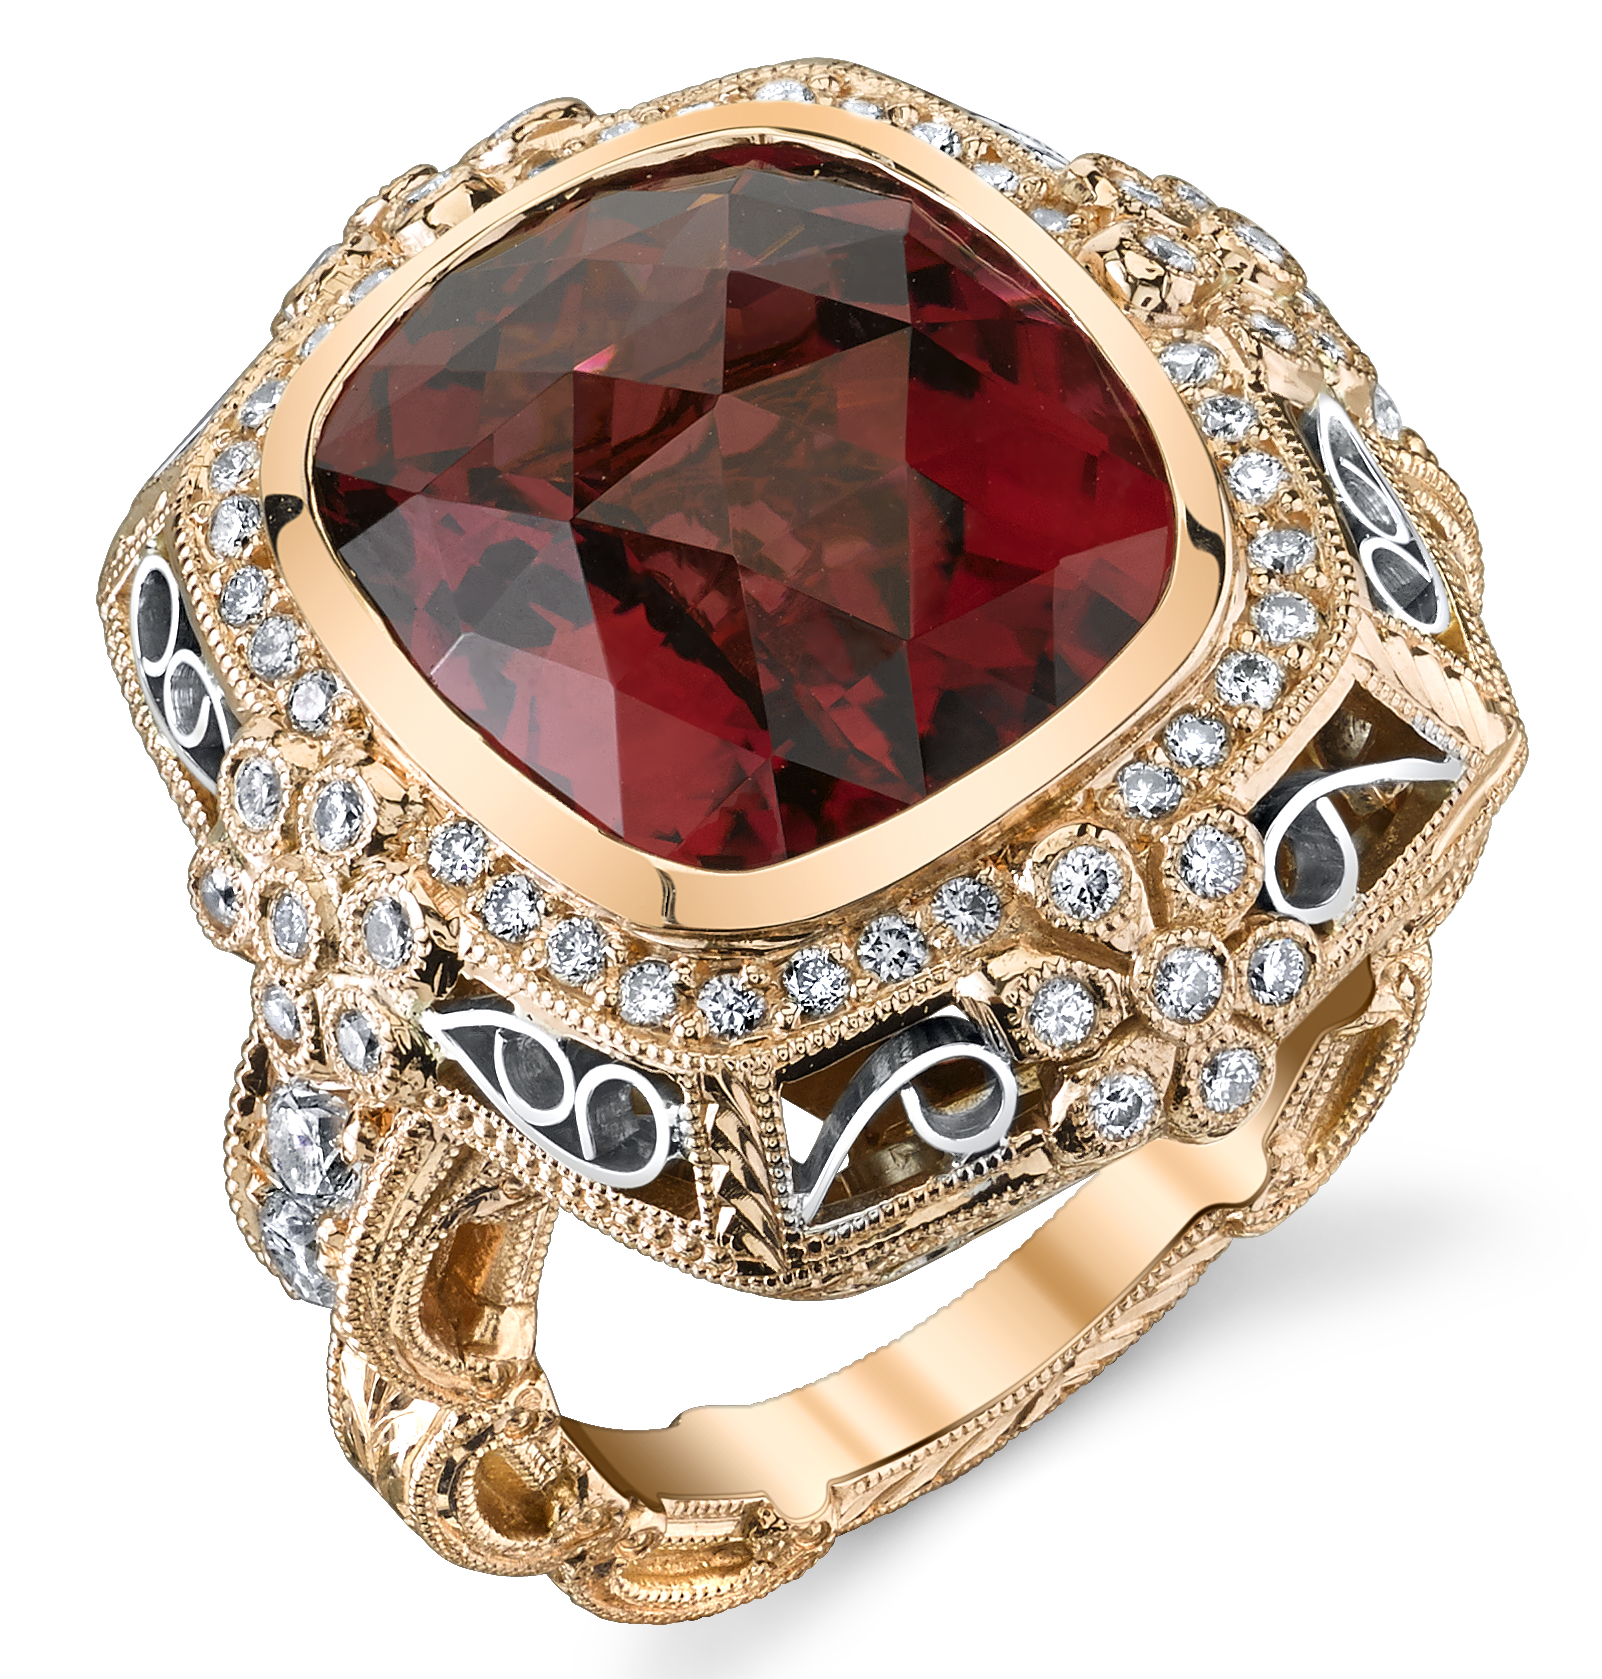 Dallas Prince Designs Moonlight Rose tourmaline ring | JCK On Your Market